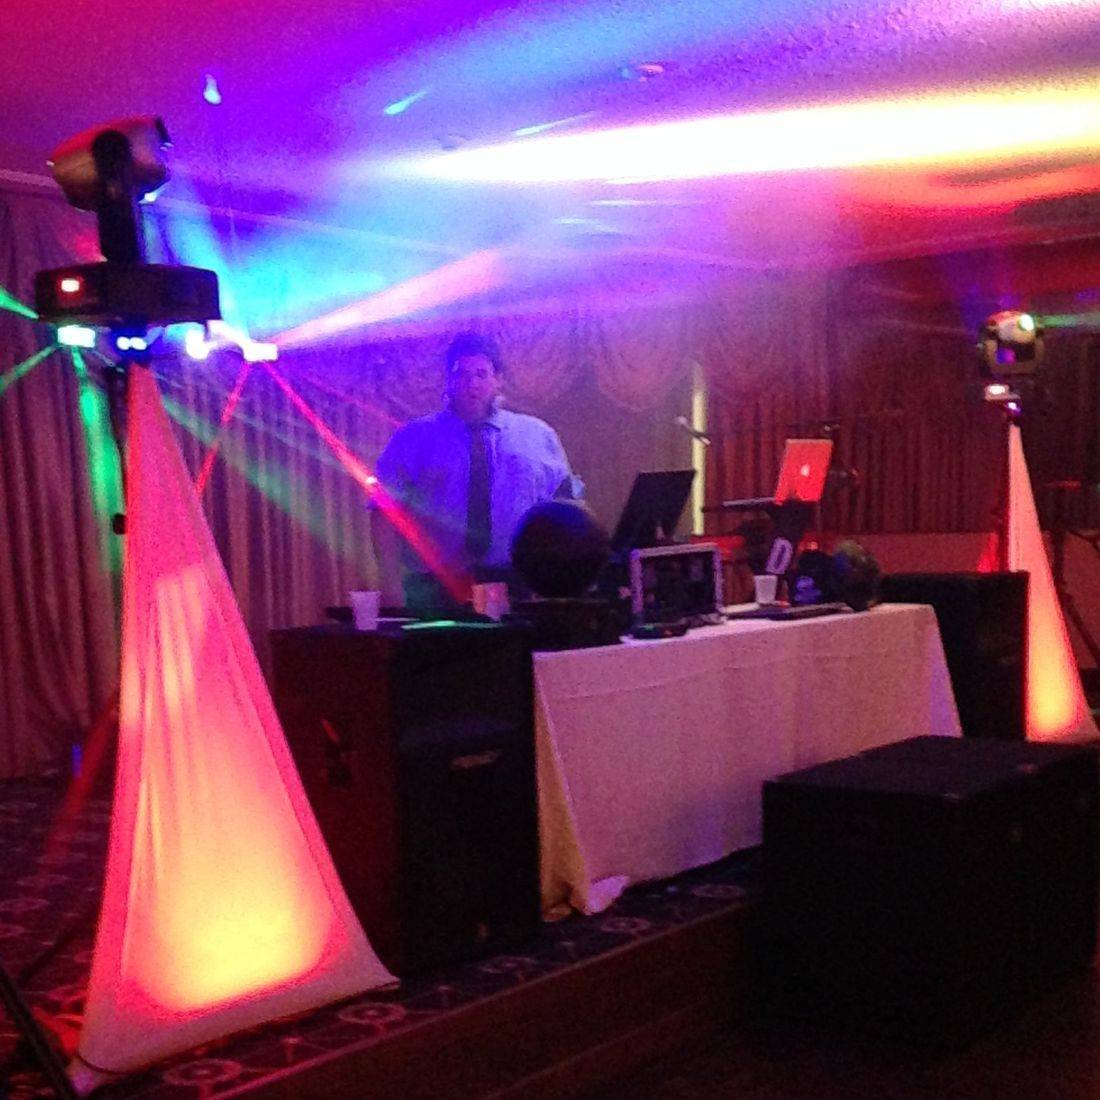 Mr. Productions DJ Service providing Wedding DJ services at Liuna Gardens in Stoney Creek.